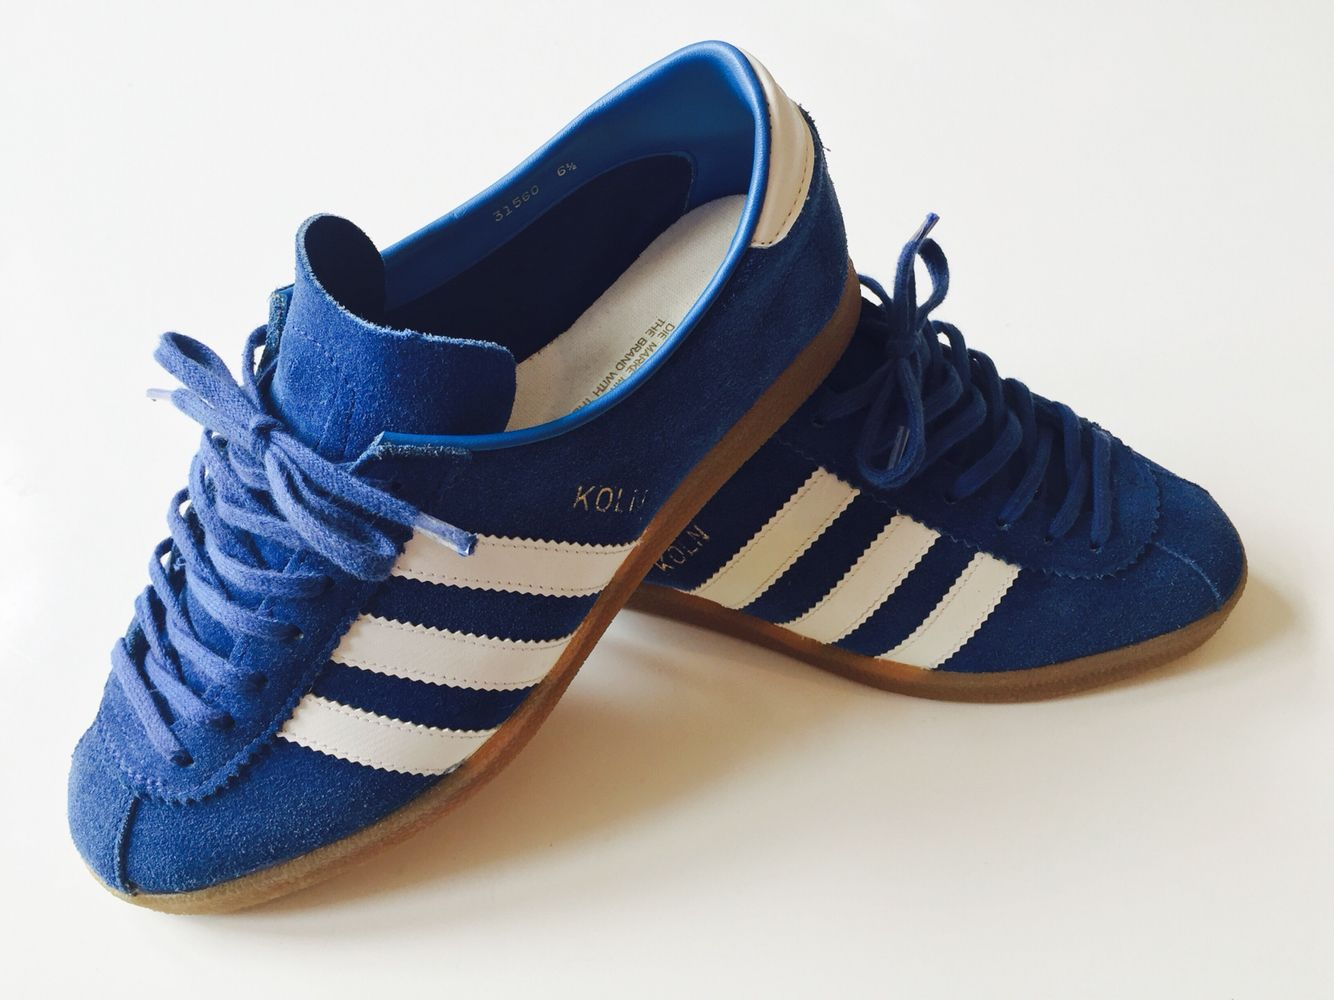 Adidas Köln Made in Yugoslavia 1983 | Sneakers I Love in